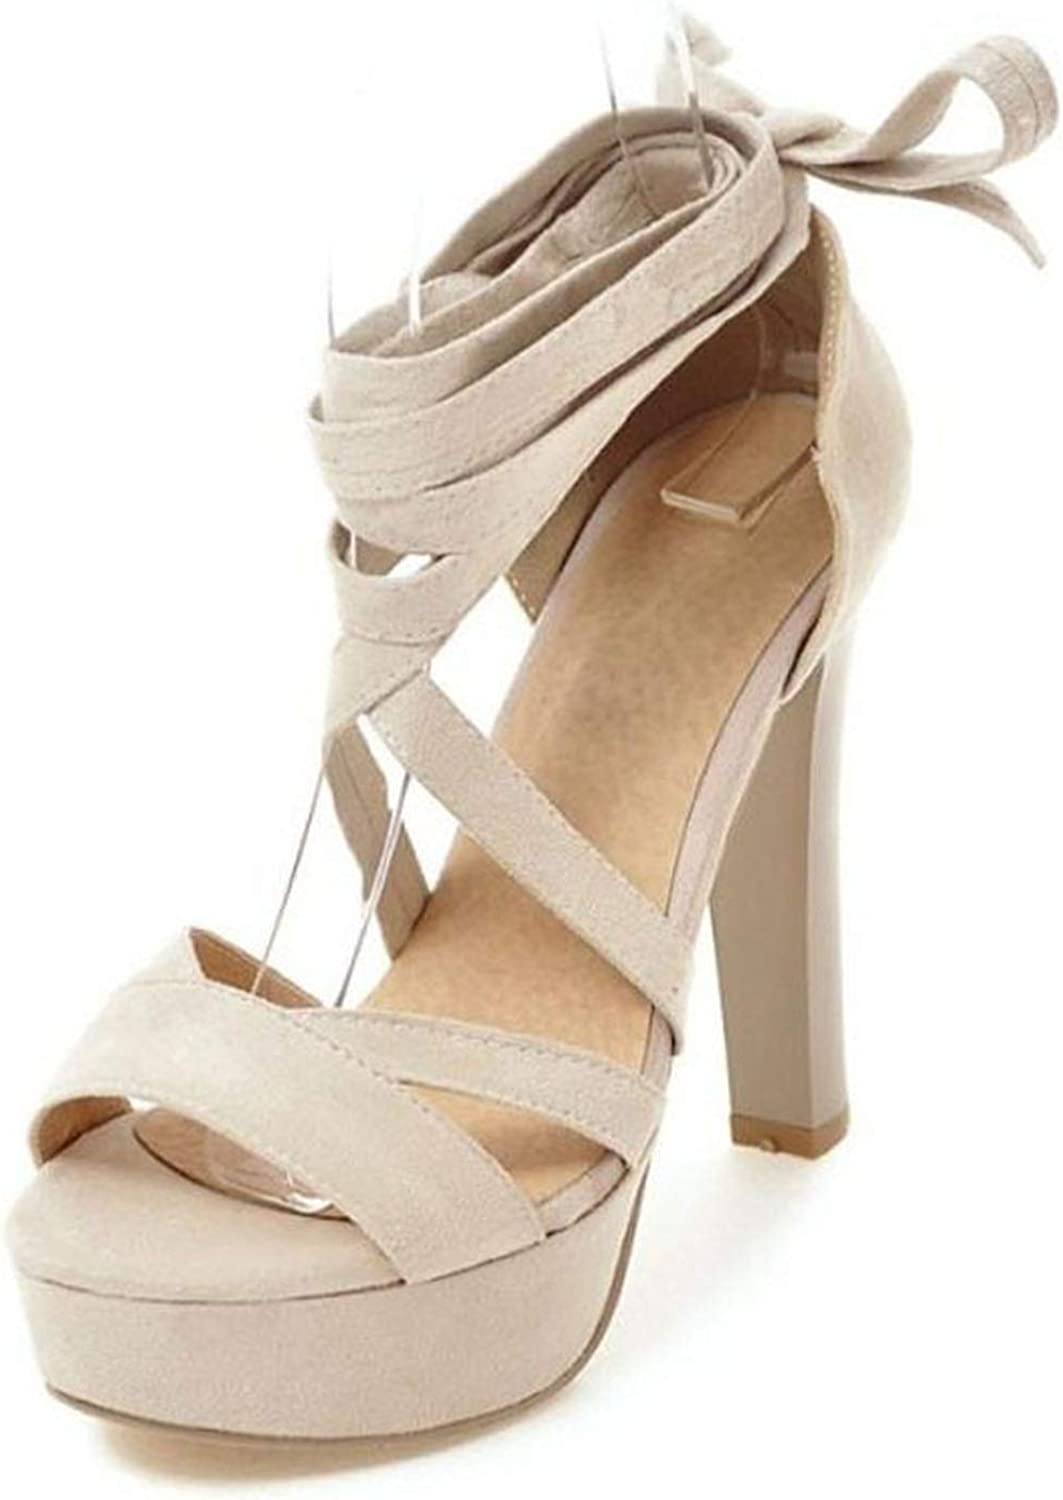 Fairly New Supper High Heels Platform Cross Tied Strappy shoes Sexy Party Gladiator,Beige,5